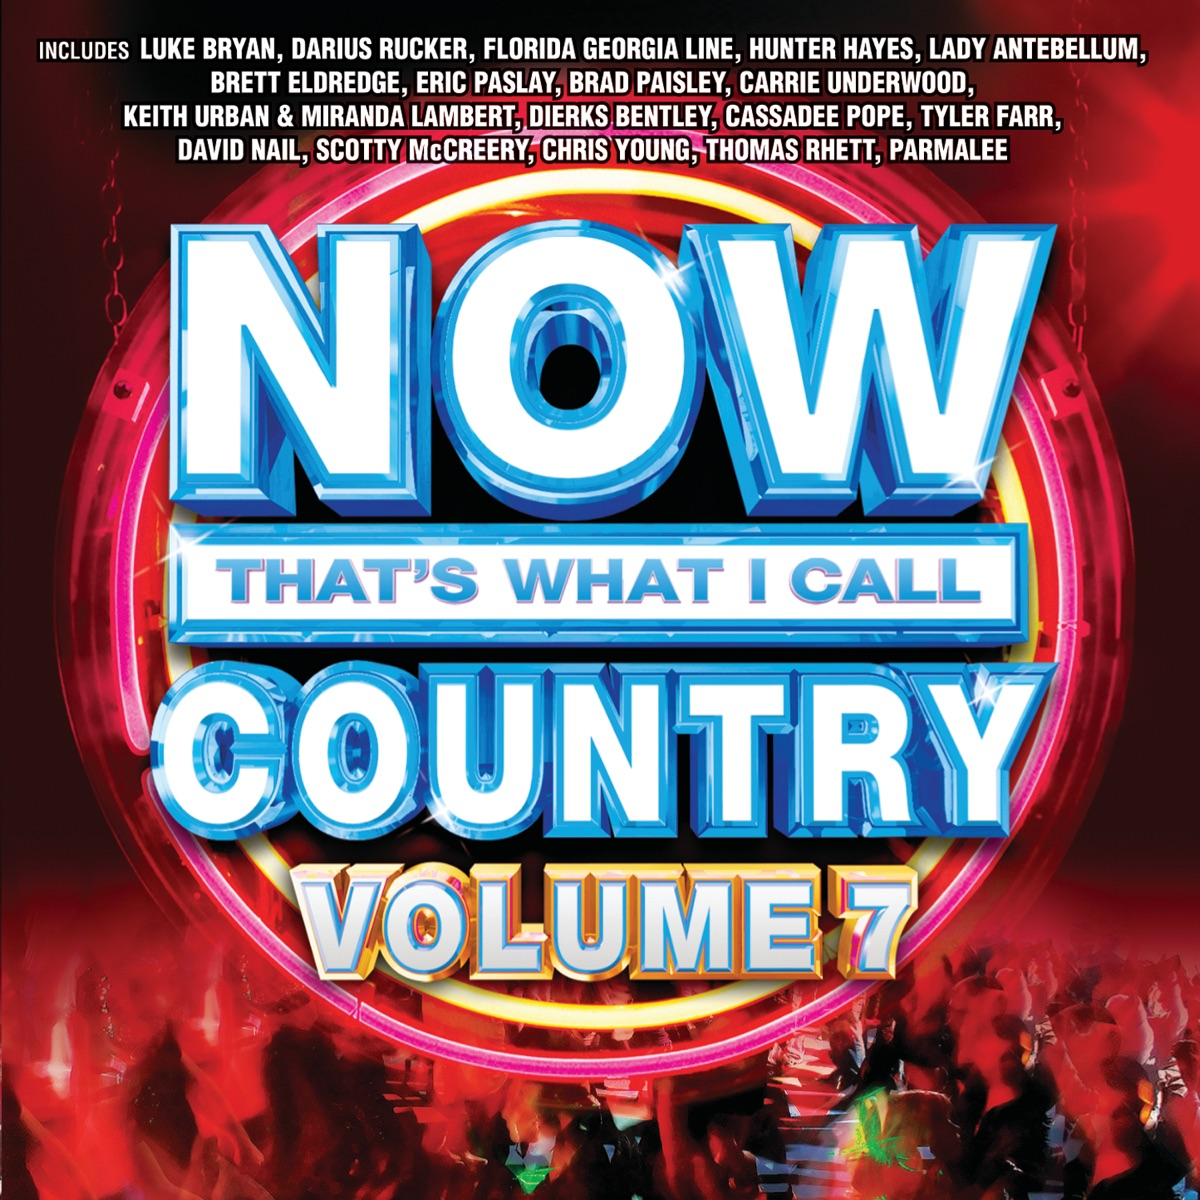 NOW Thats What I Call Country Vol 7 Various Artists CD cover